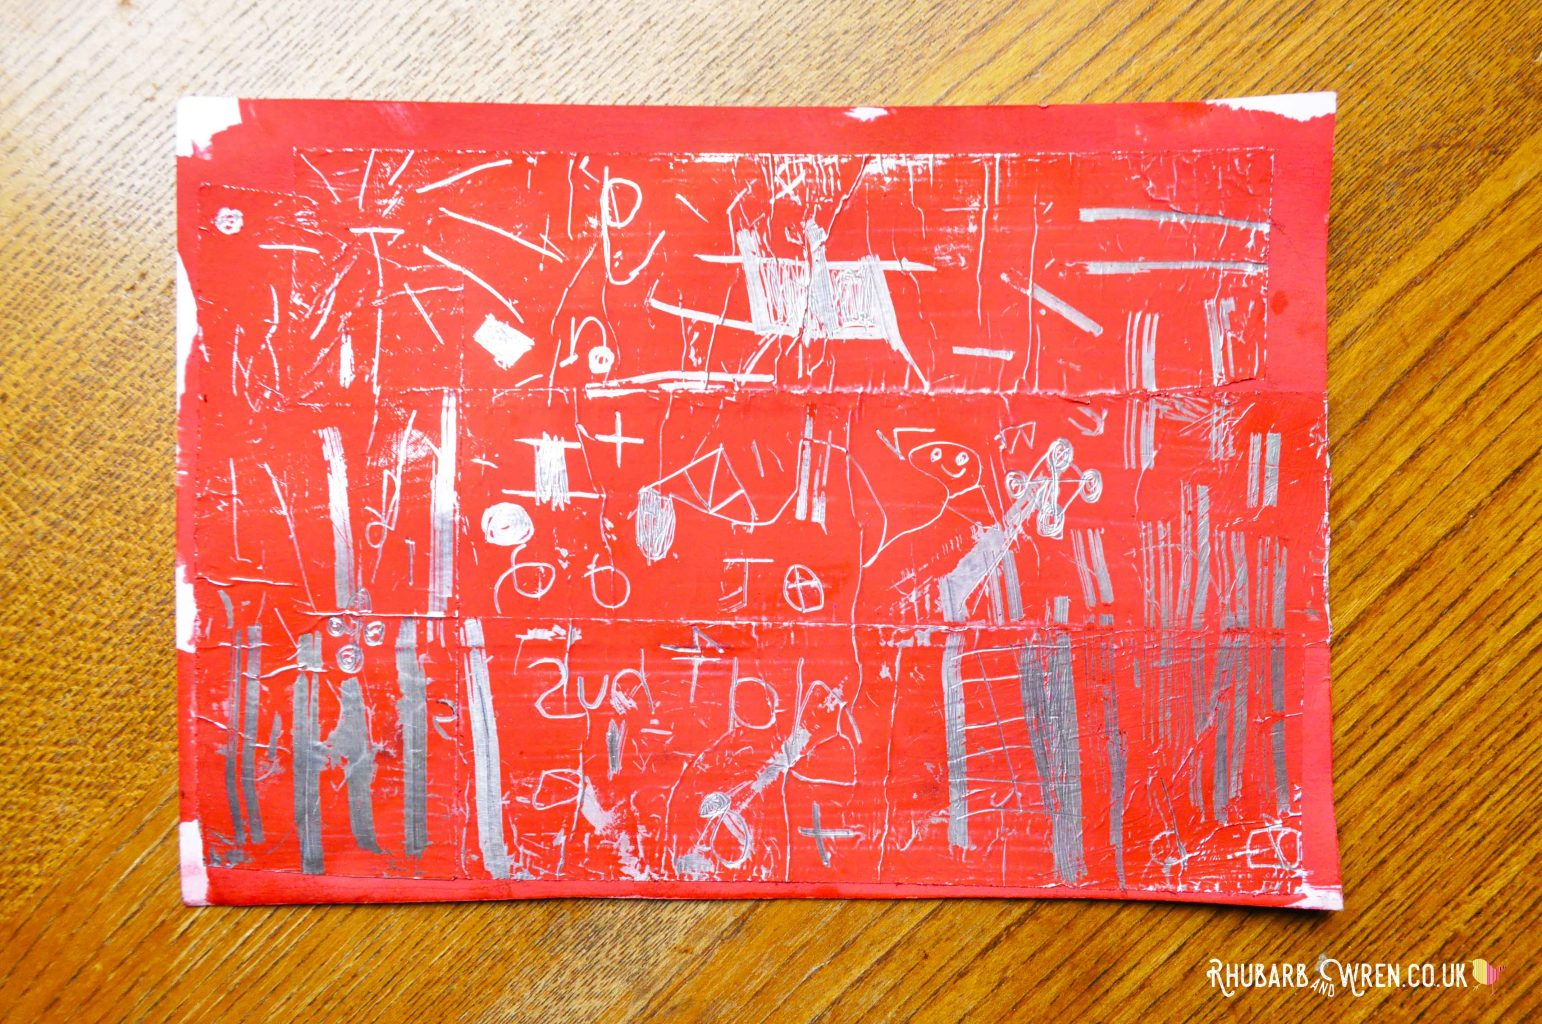 diy scratch art card - red paint on aluminium foil tape.